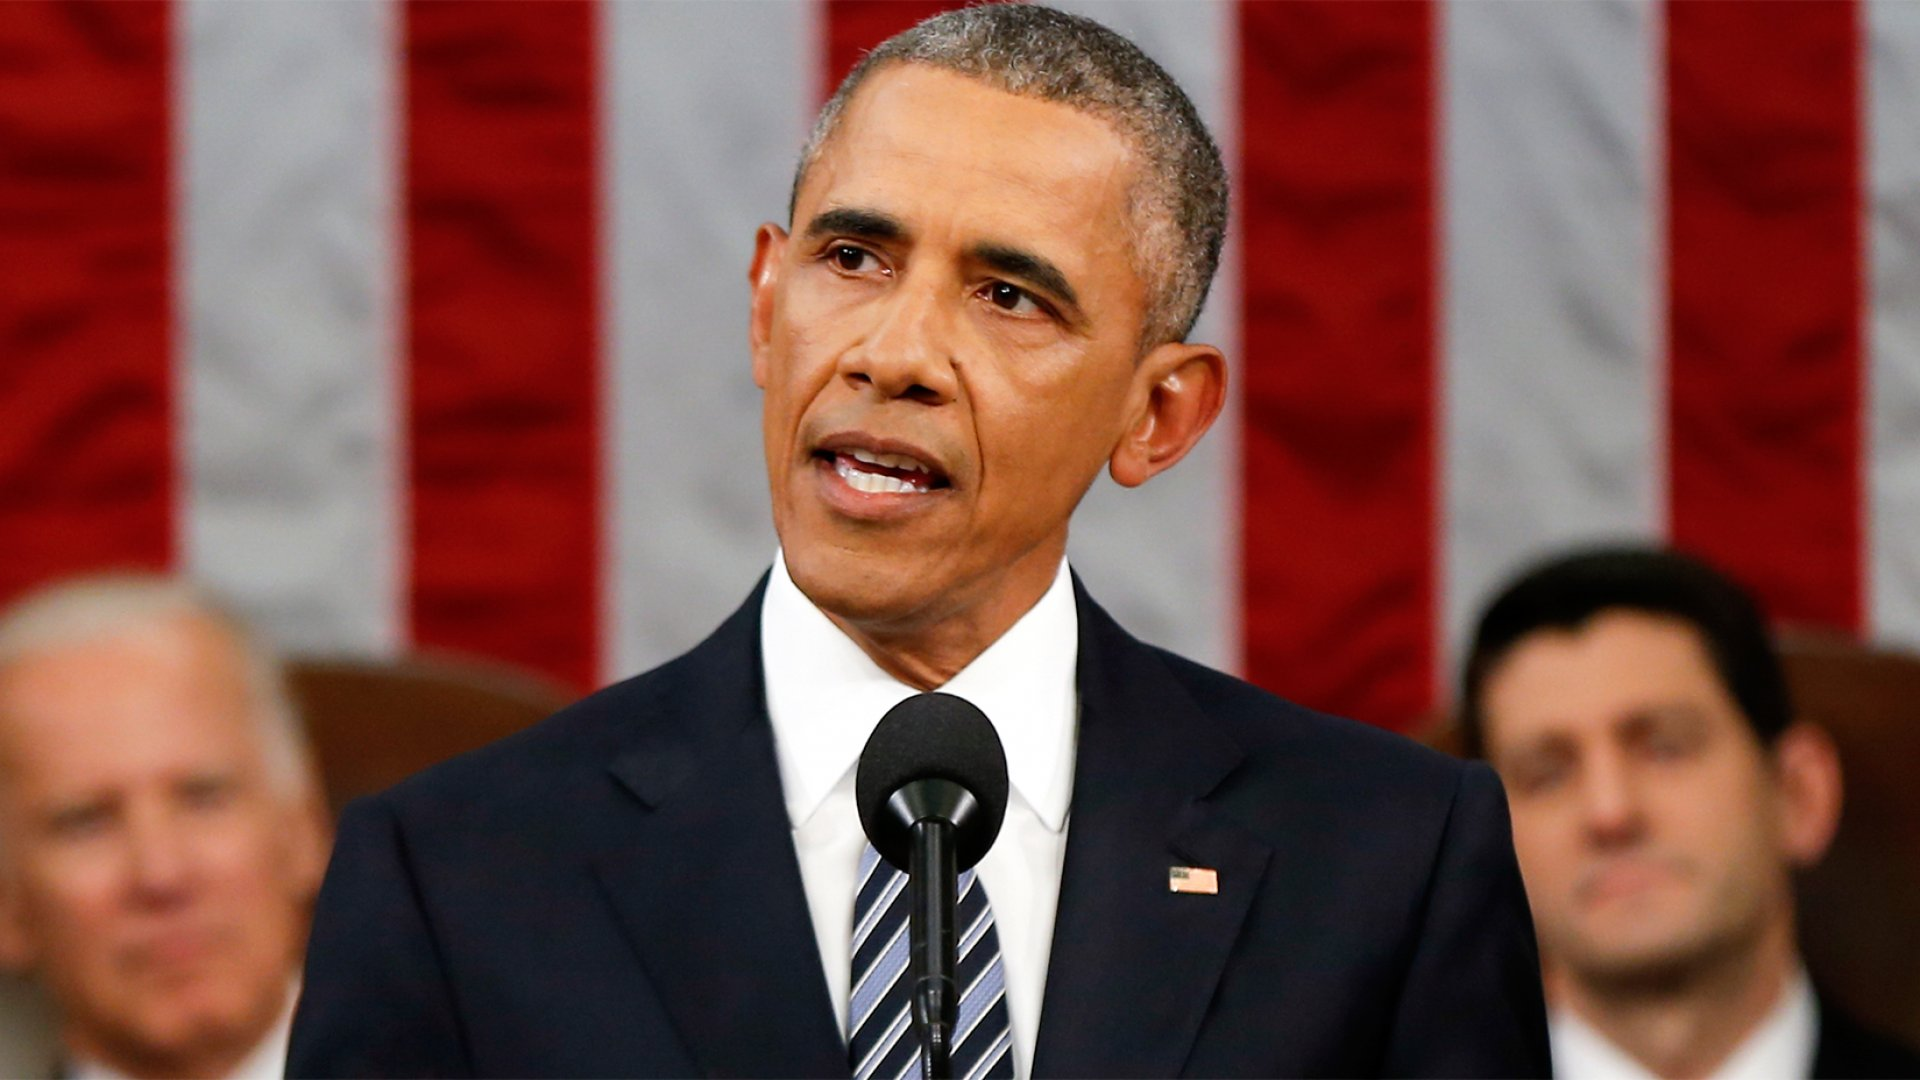 In His Final State of the Union Address, Obama Beats the Drum forAmerican Small Business